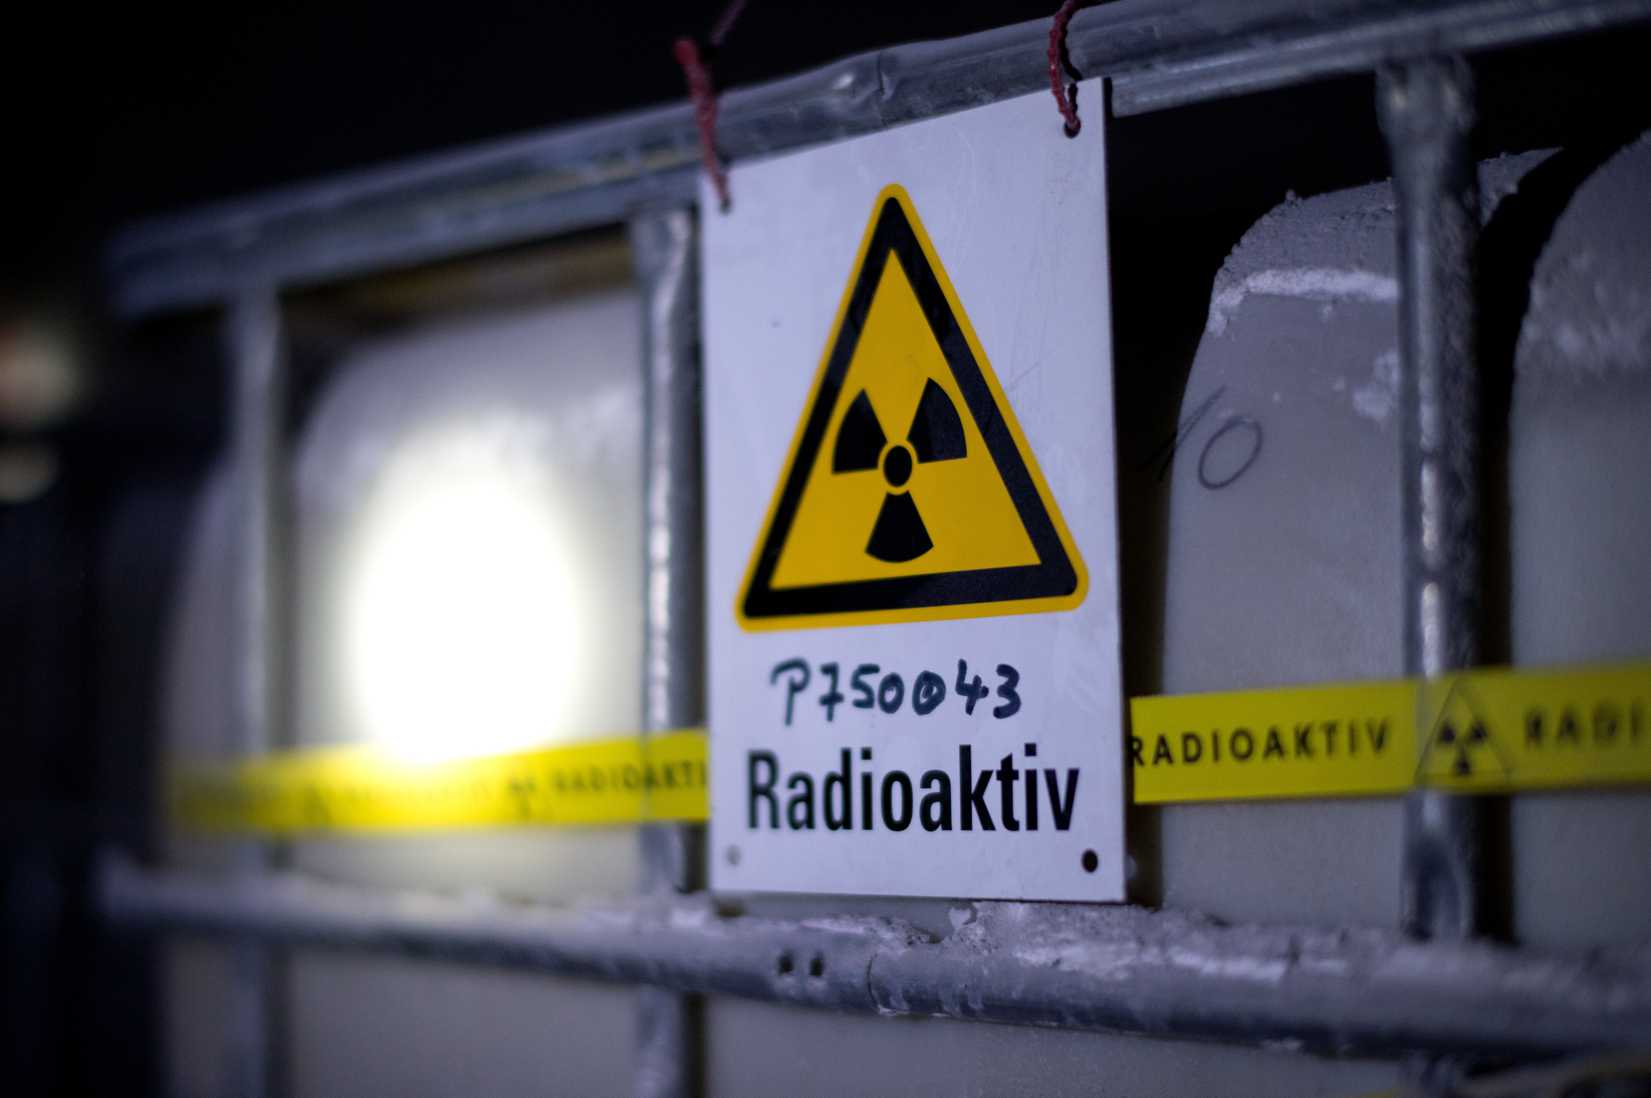 A tank containing radioactive water is seen at the Asse nuclear-waste-storage facility in Remlingen, Germany, on March 4, 2014